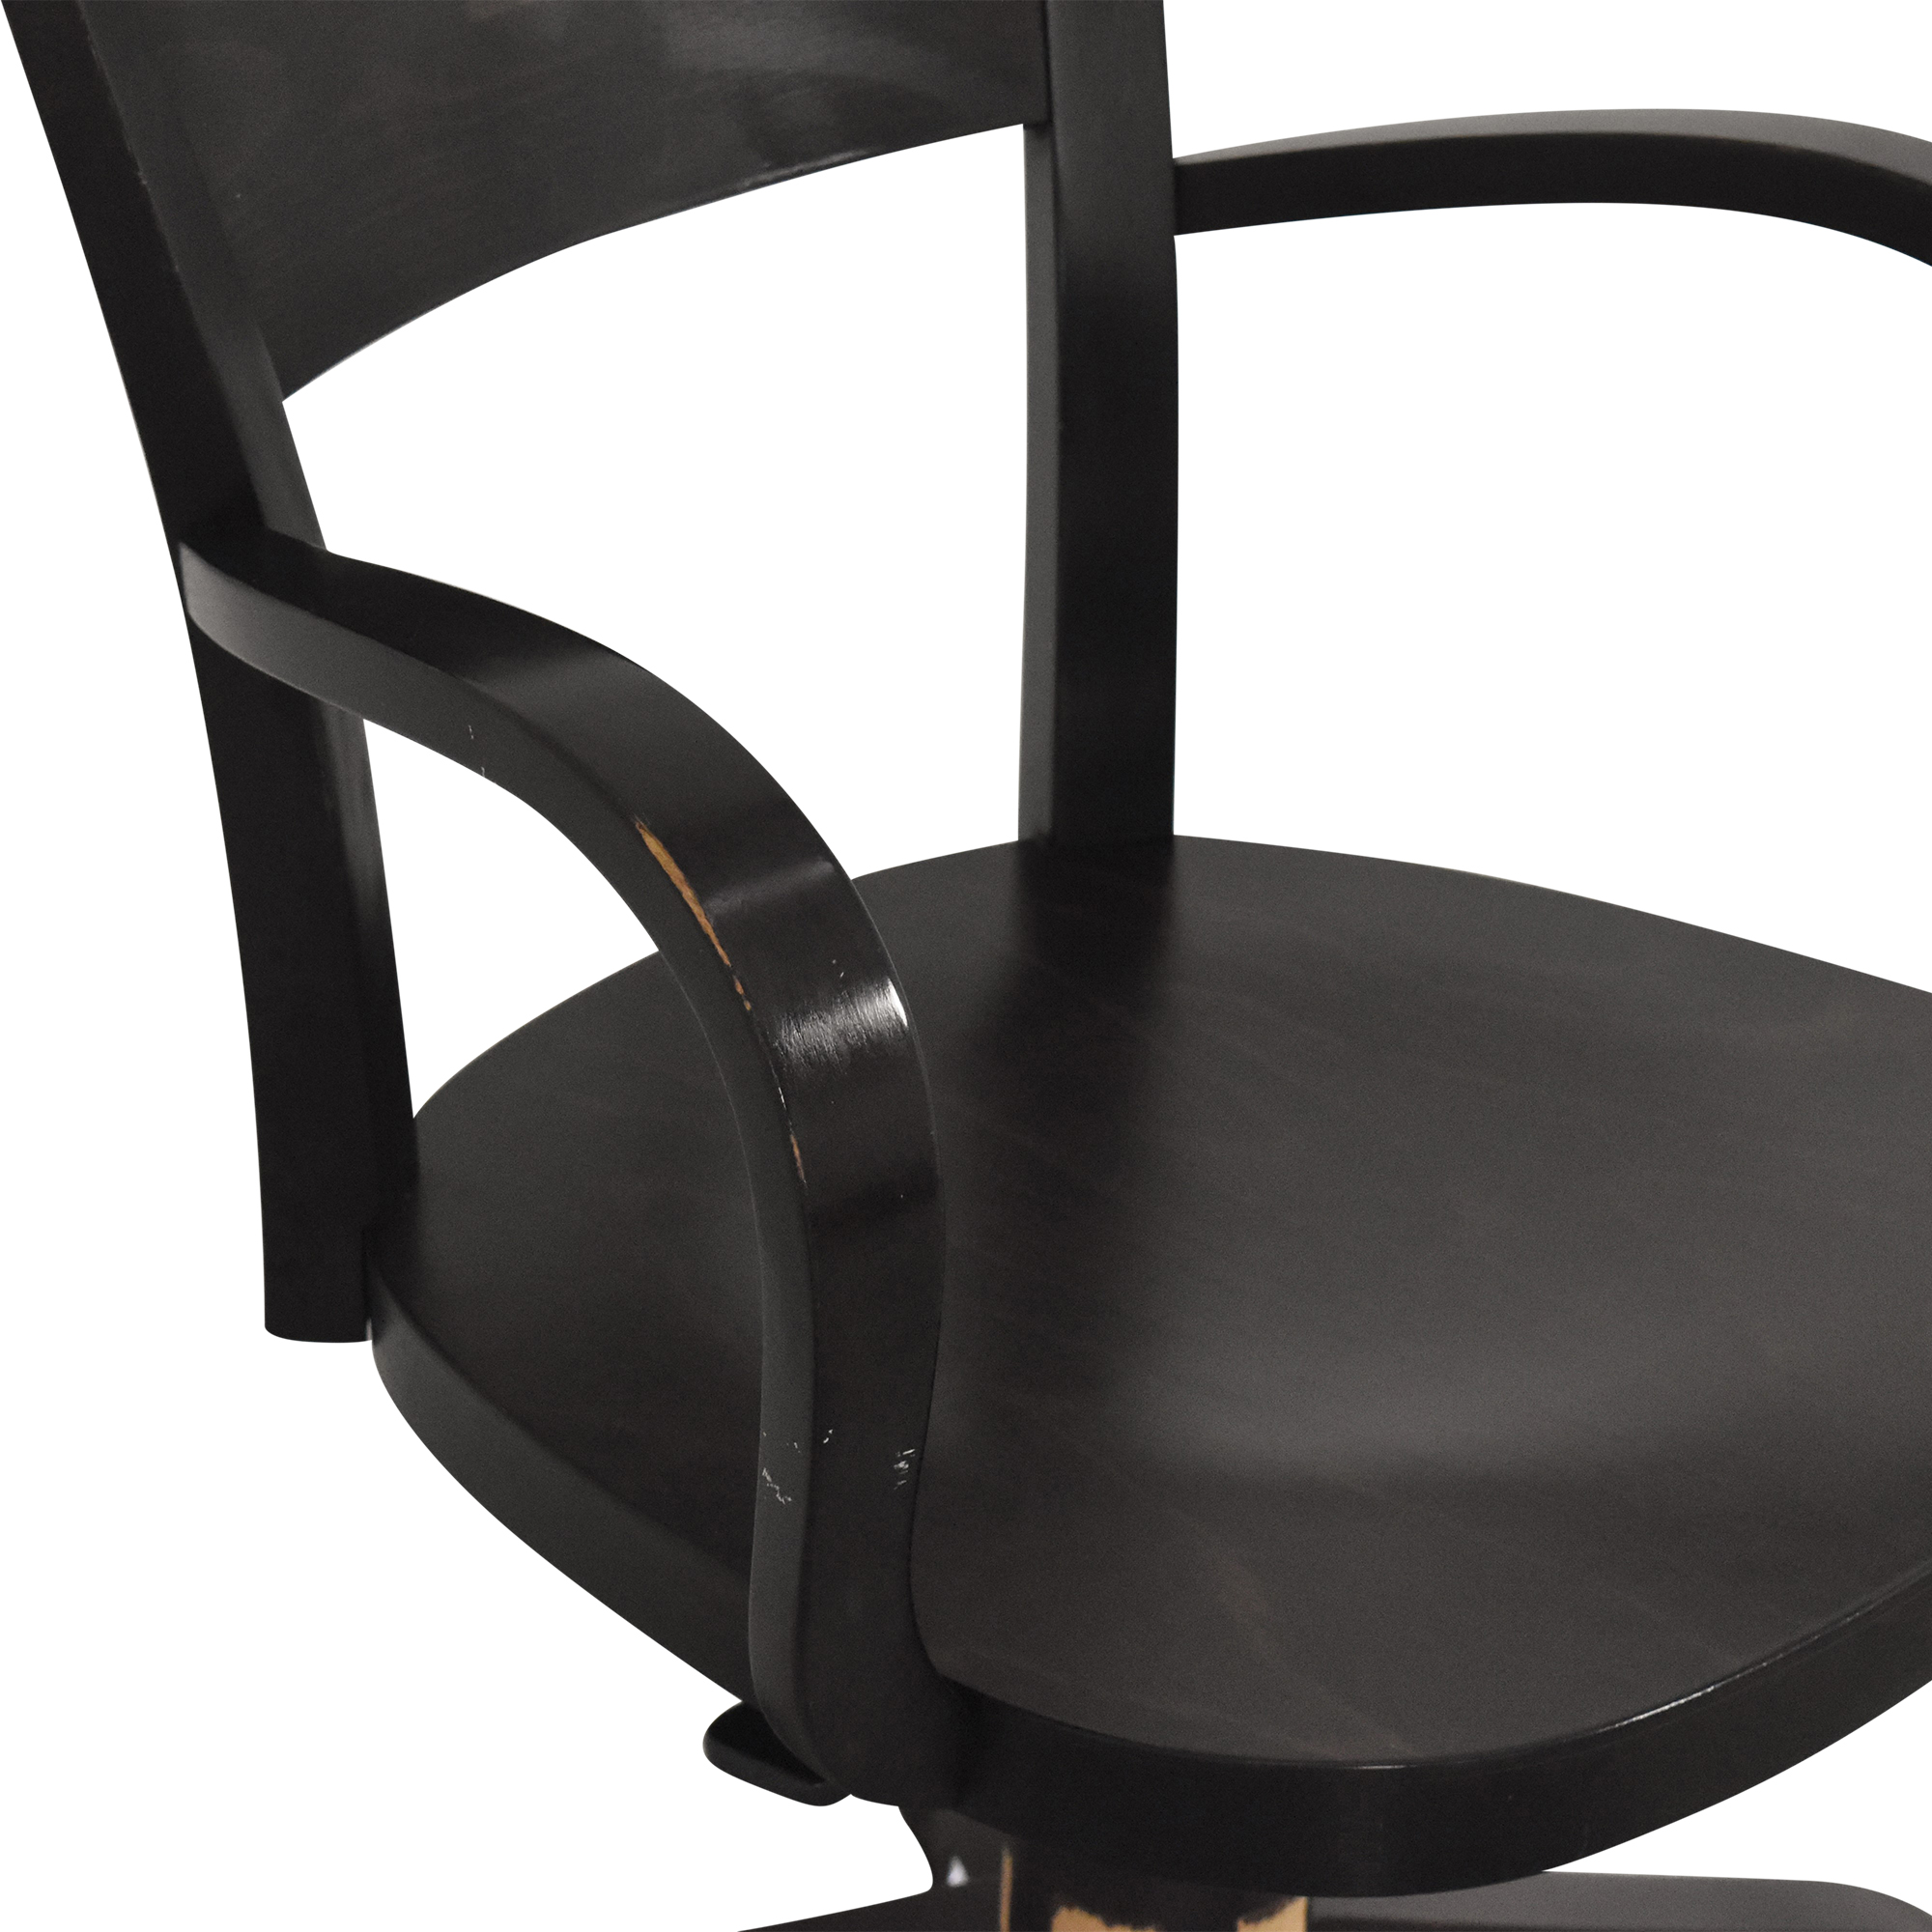 buy Crate & Barrel Swivel Desk Chair Crate & Barrel Home Office Chairs